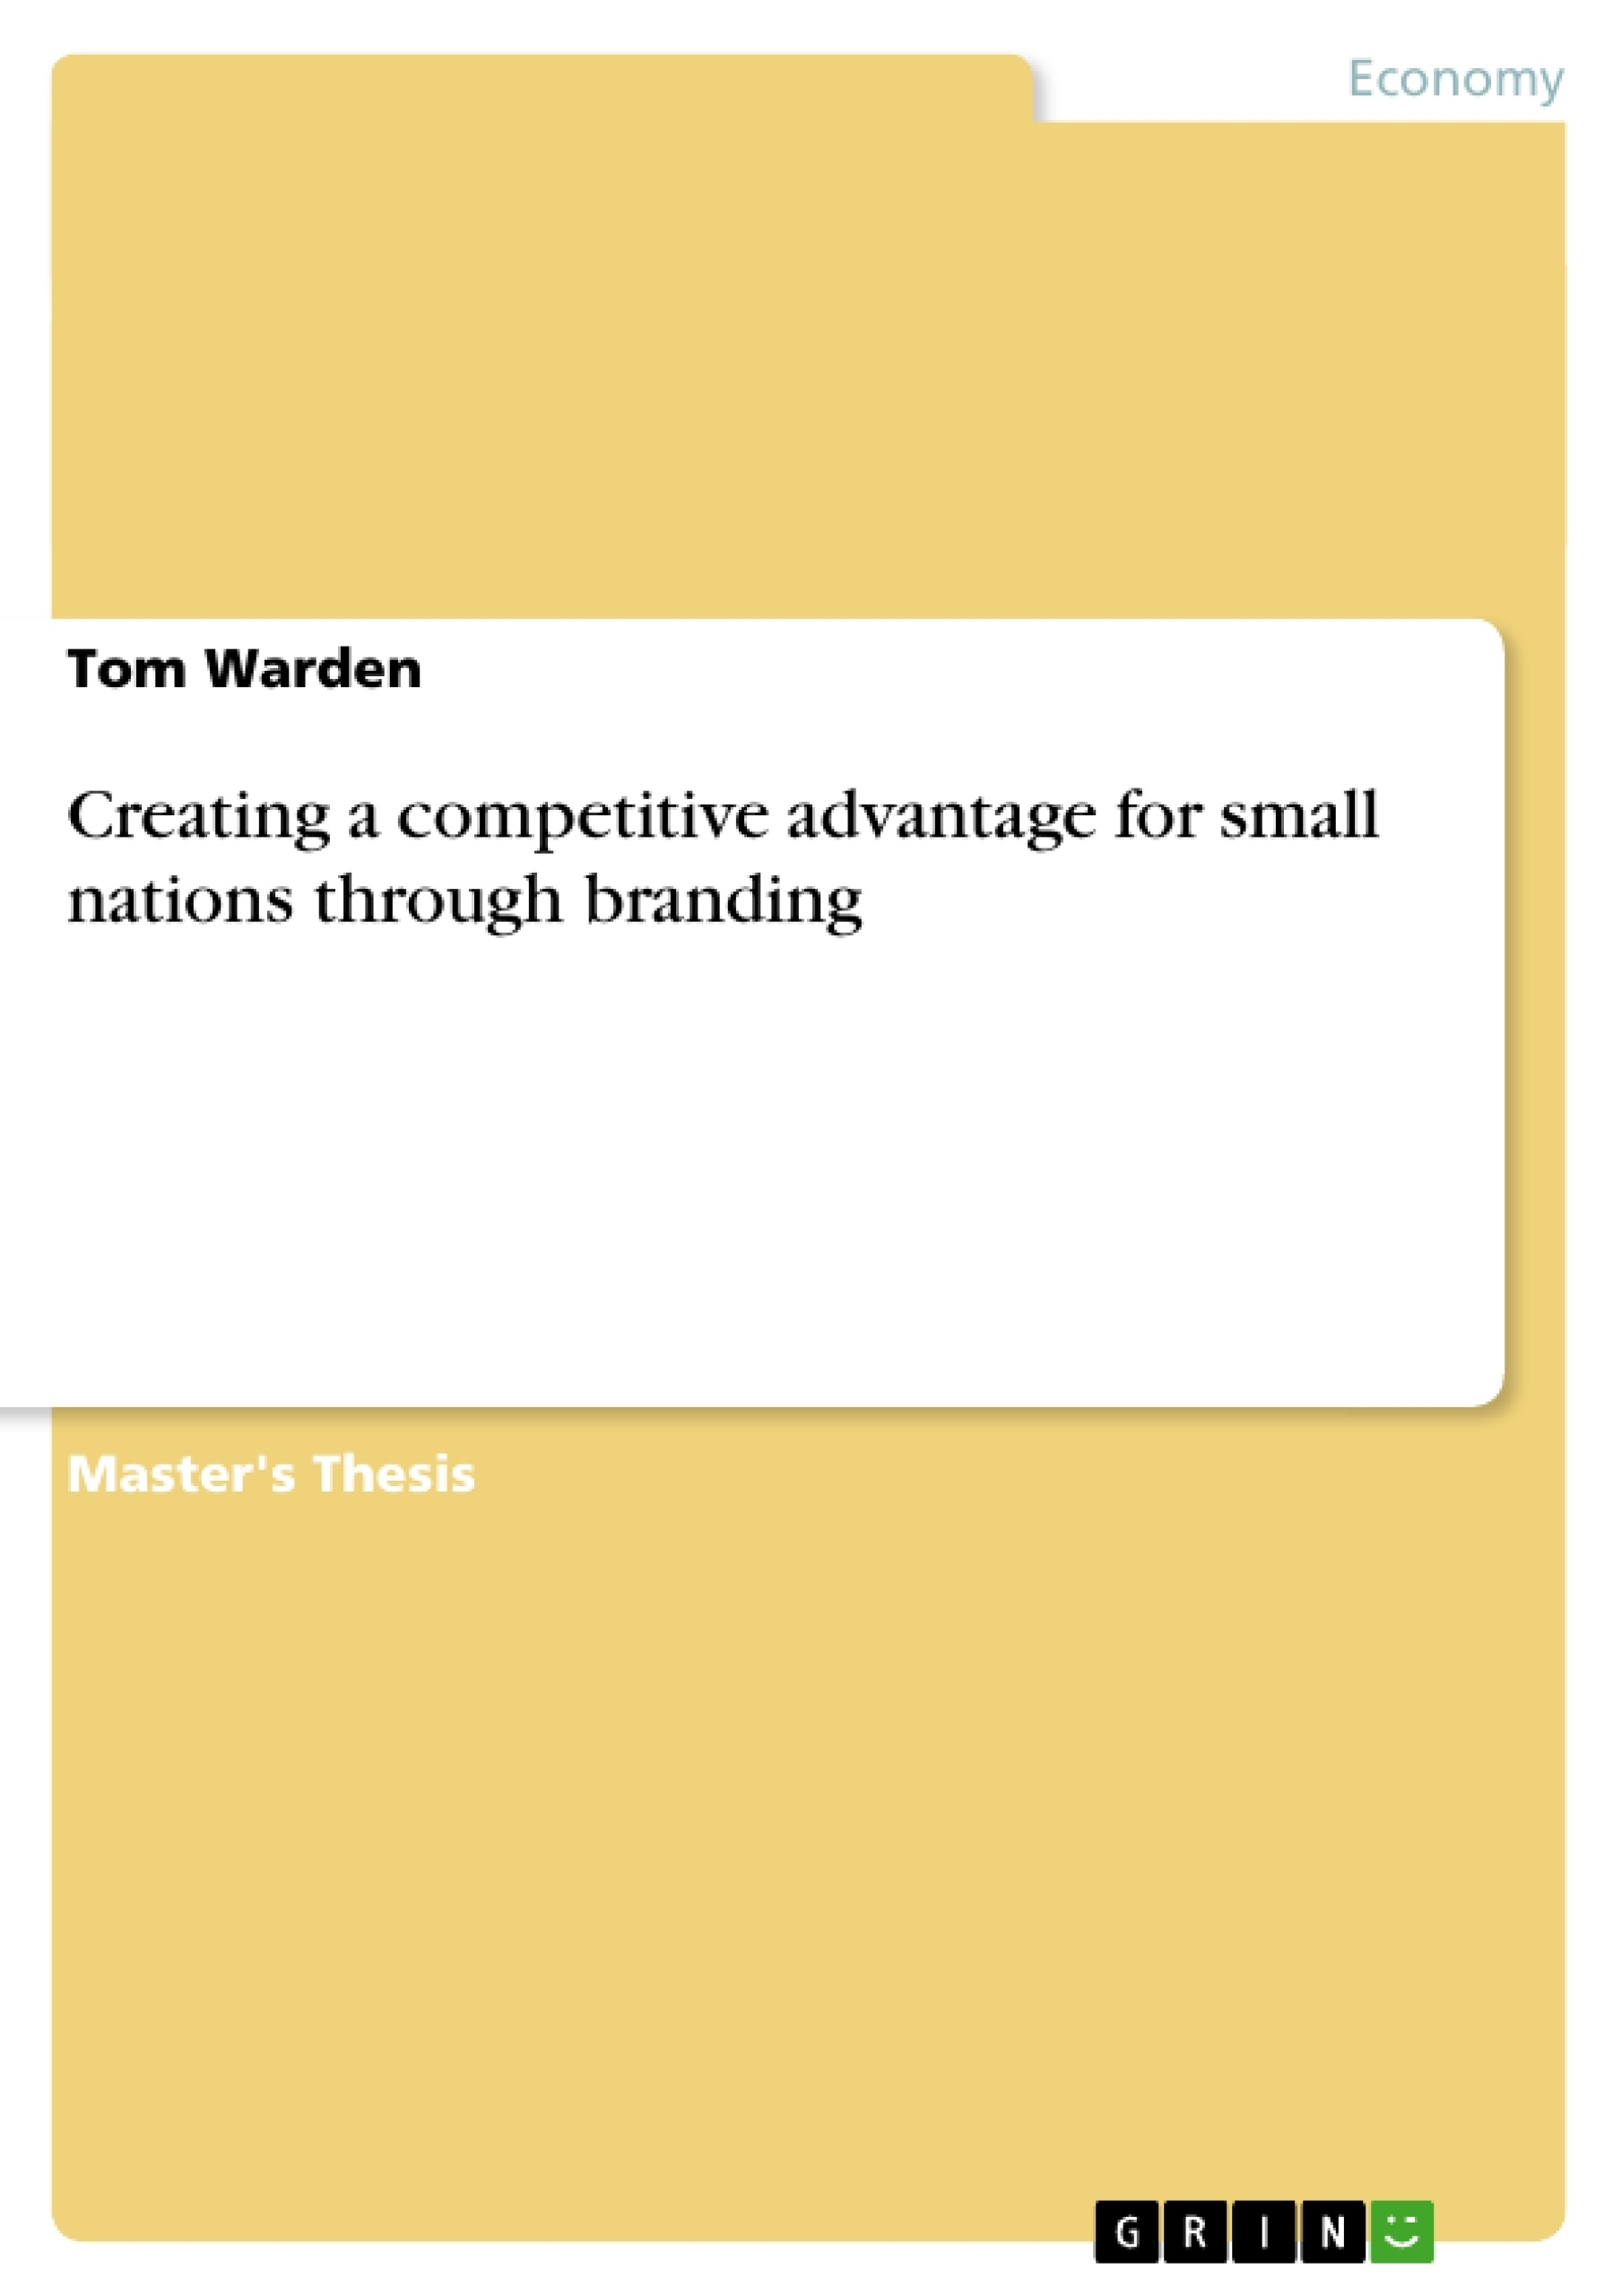 Title: Creating a competitive advantage for small nations through branding